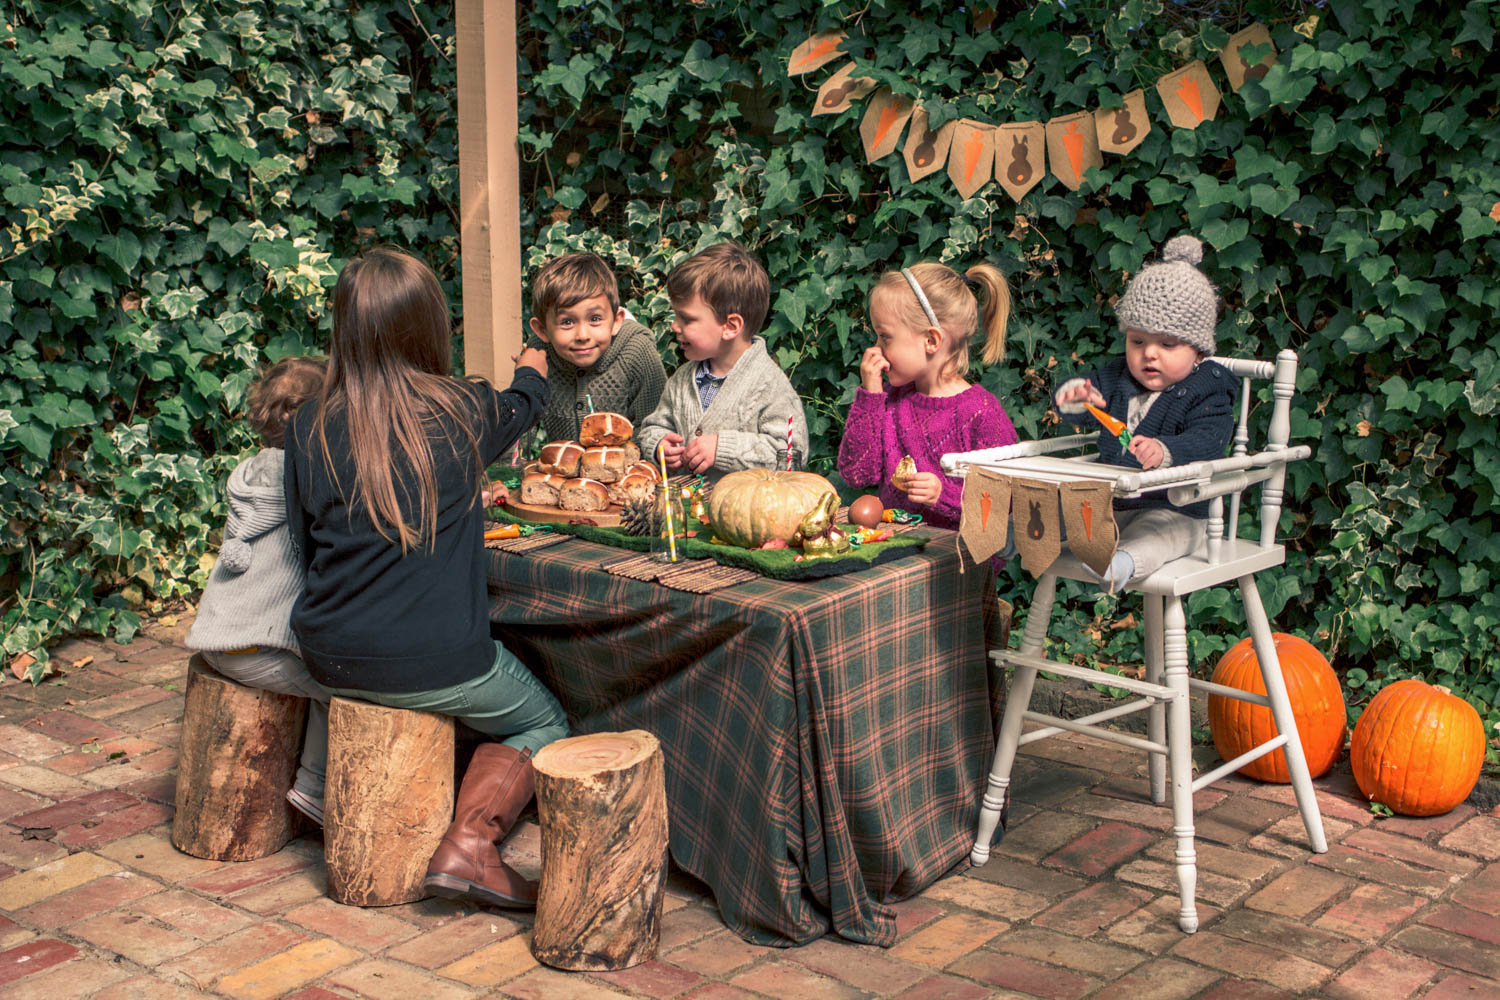 Children seated on wooden logs easting hot cross buns and chocolates at party table for autumn easter egg hunt. Baby seated in vintage wooden high chair with bunting